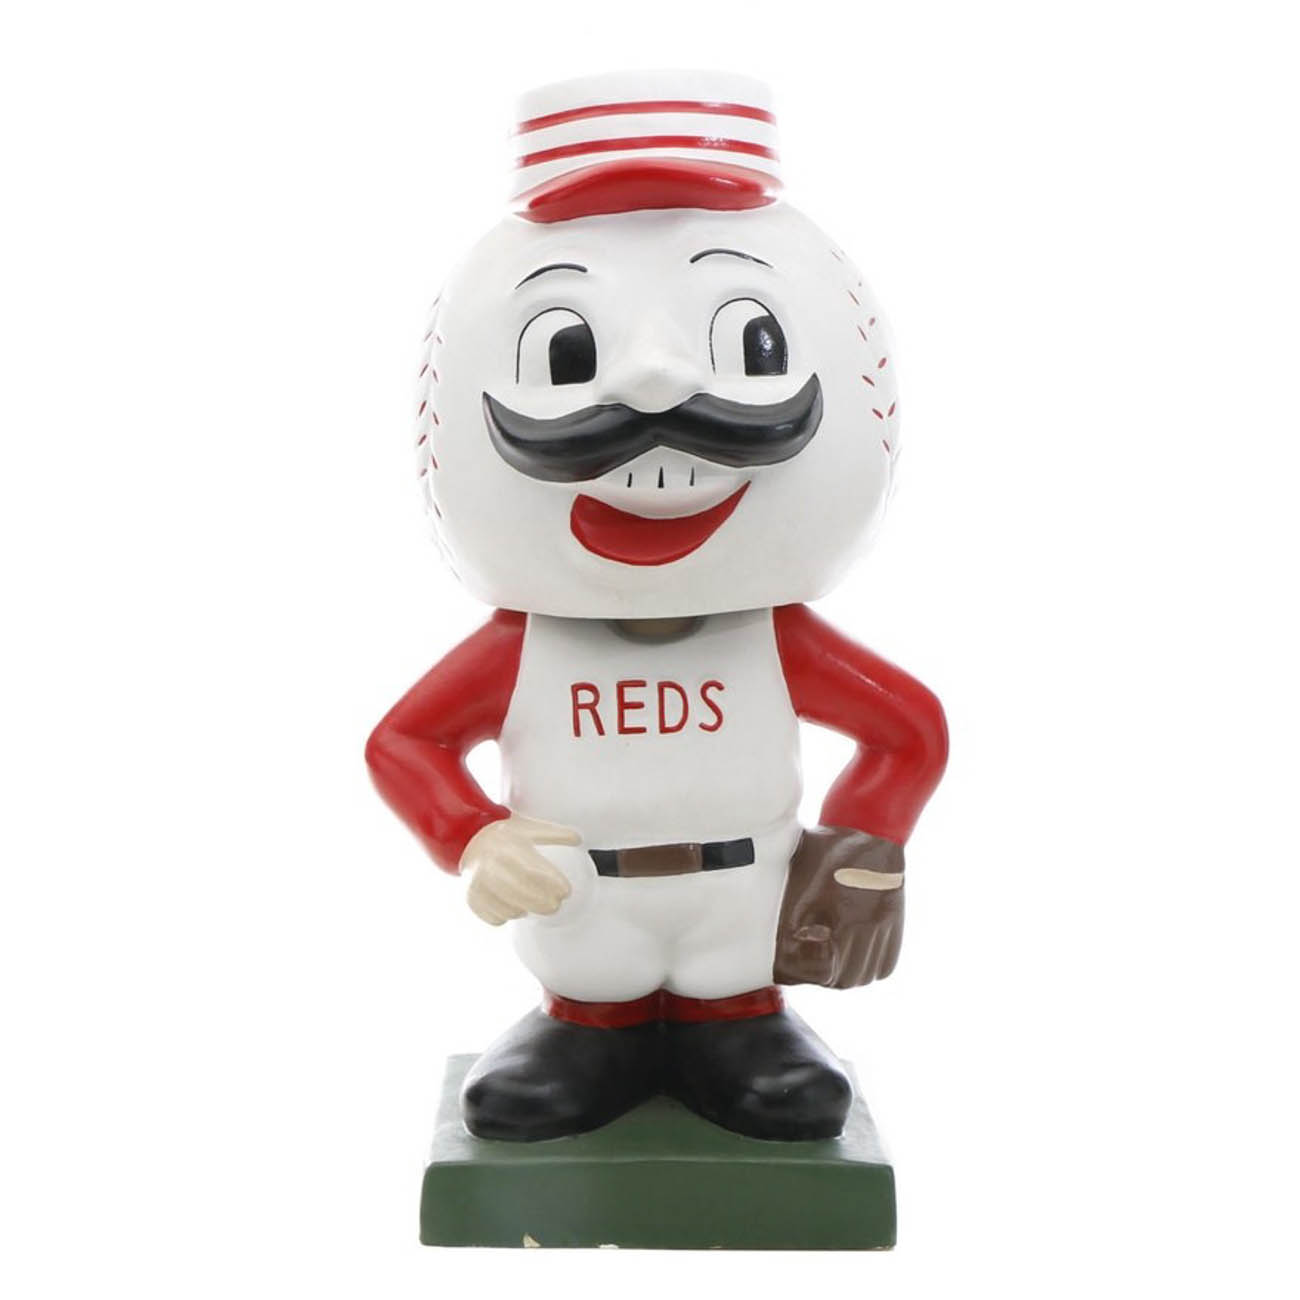 "This massive bobblehead doll of the Cincinnati Reds' famous team mascot, Mr. Redlegs, represents a 1962 era bobblehead doll and was created by artist Henry ""Hank"" Zuerick. He is dressed in the sleeveless white jersey with red underliner attire that was made famous by such greats as Ted Kluszewski, Vada Pinson, Frank Robinson, and others. This giant baseball bobblehead doll is the largest on record. He stands at 90 inches tall (7.5 feet!). / Image courtesy of Everything But The House (EBTH) // Published: 12.6.18"